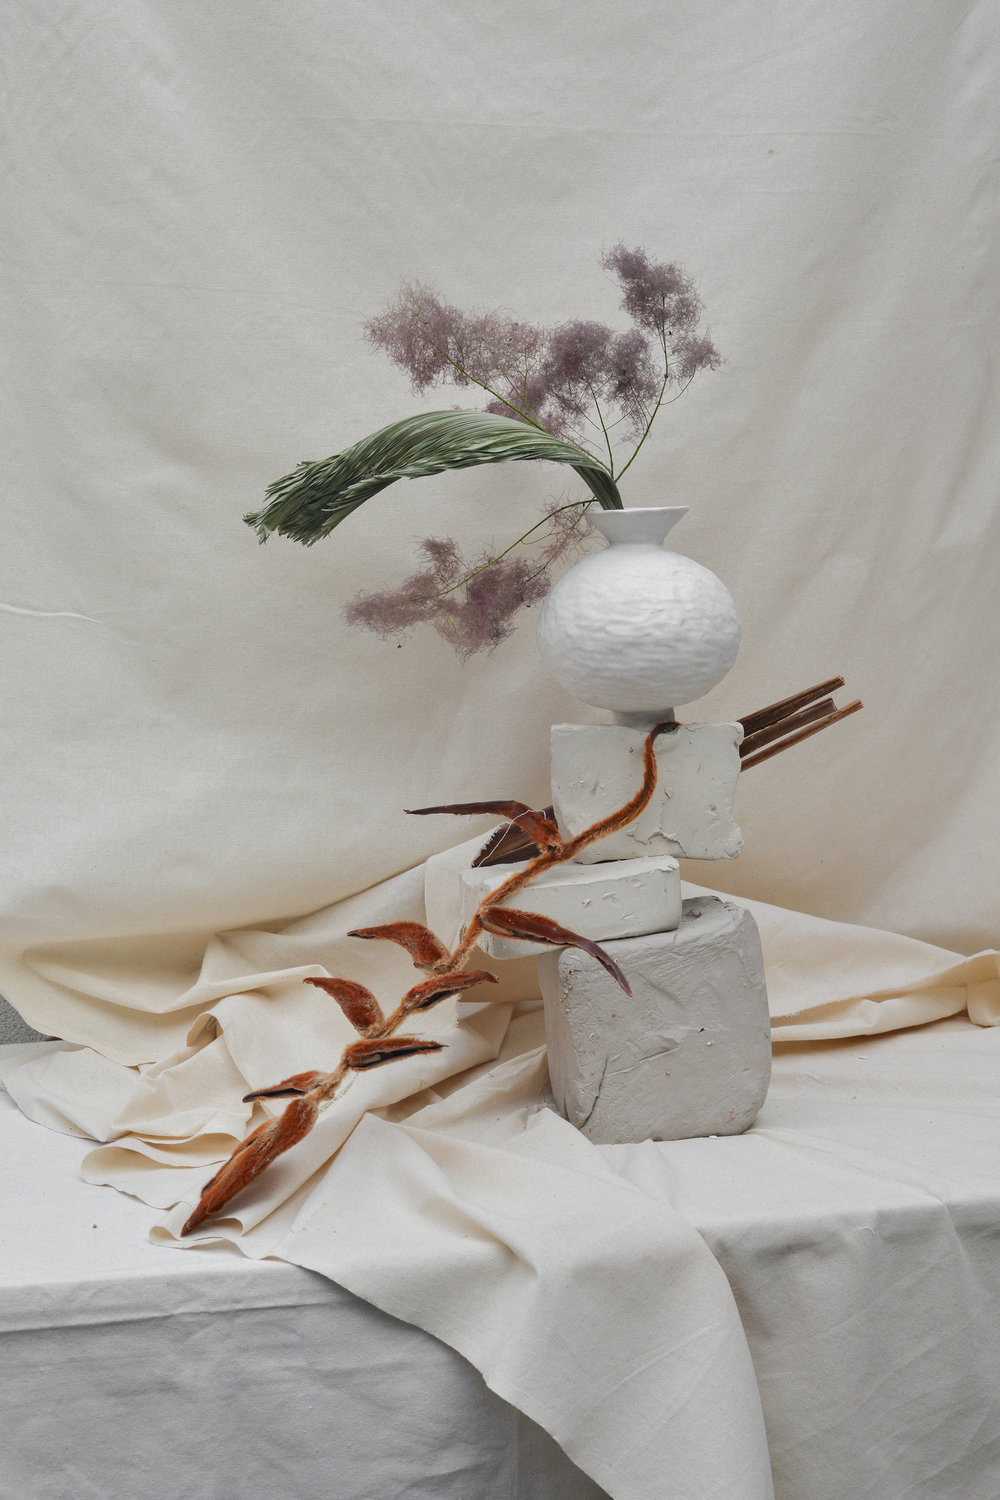 Photo by Jenna Saraco, Styling, Floral and Vessels by Simone Bodmer-Turner